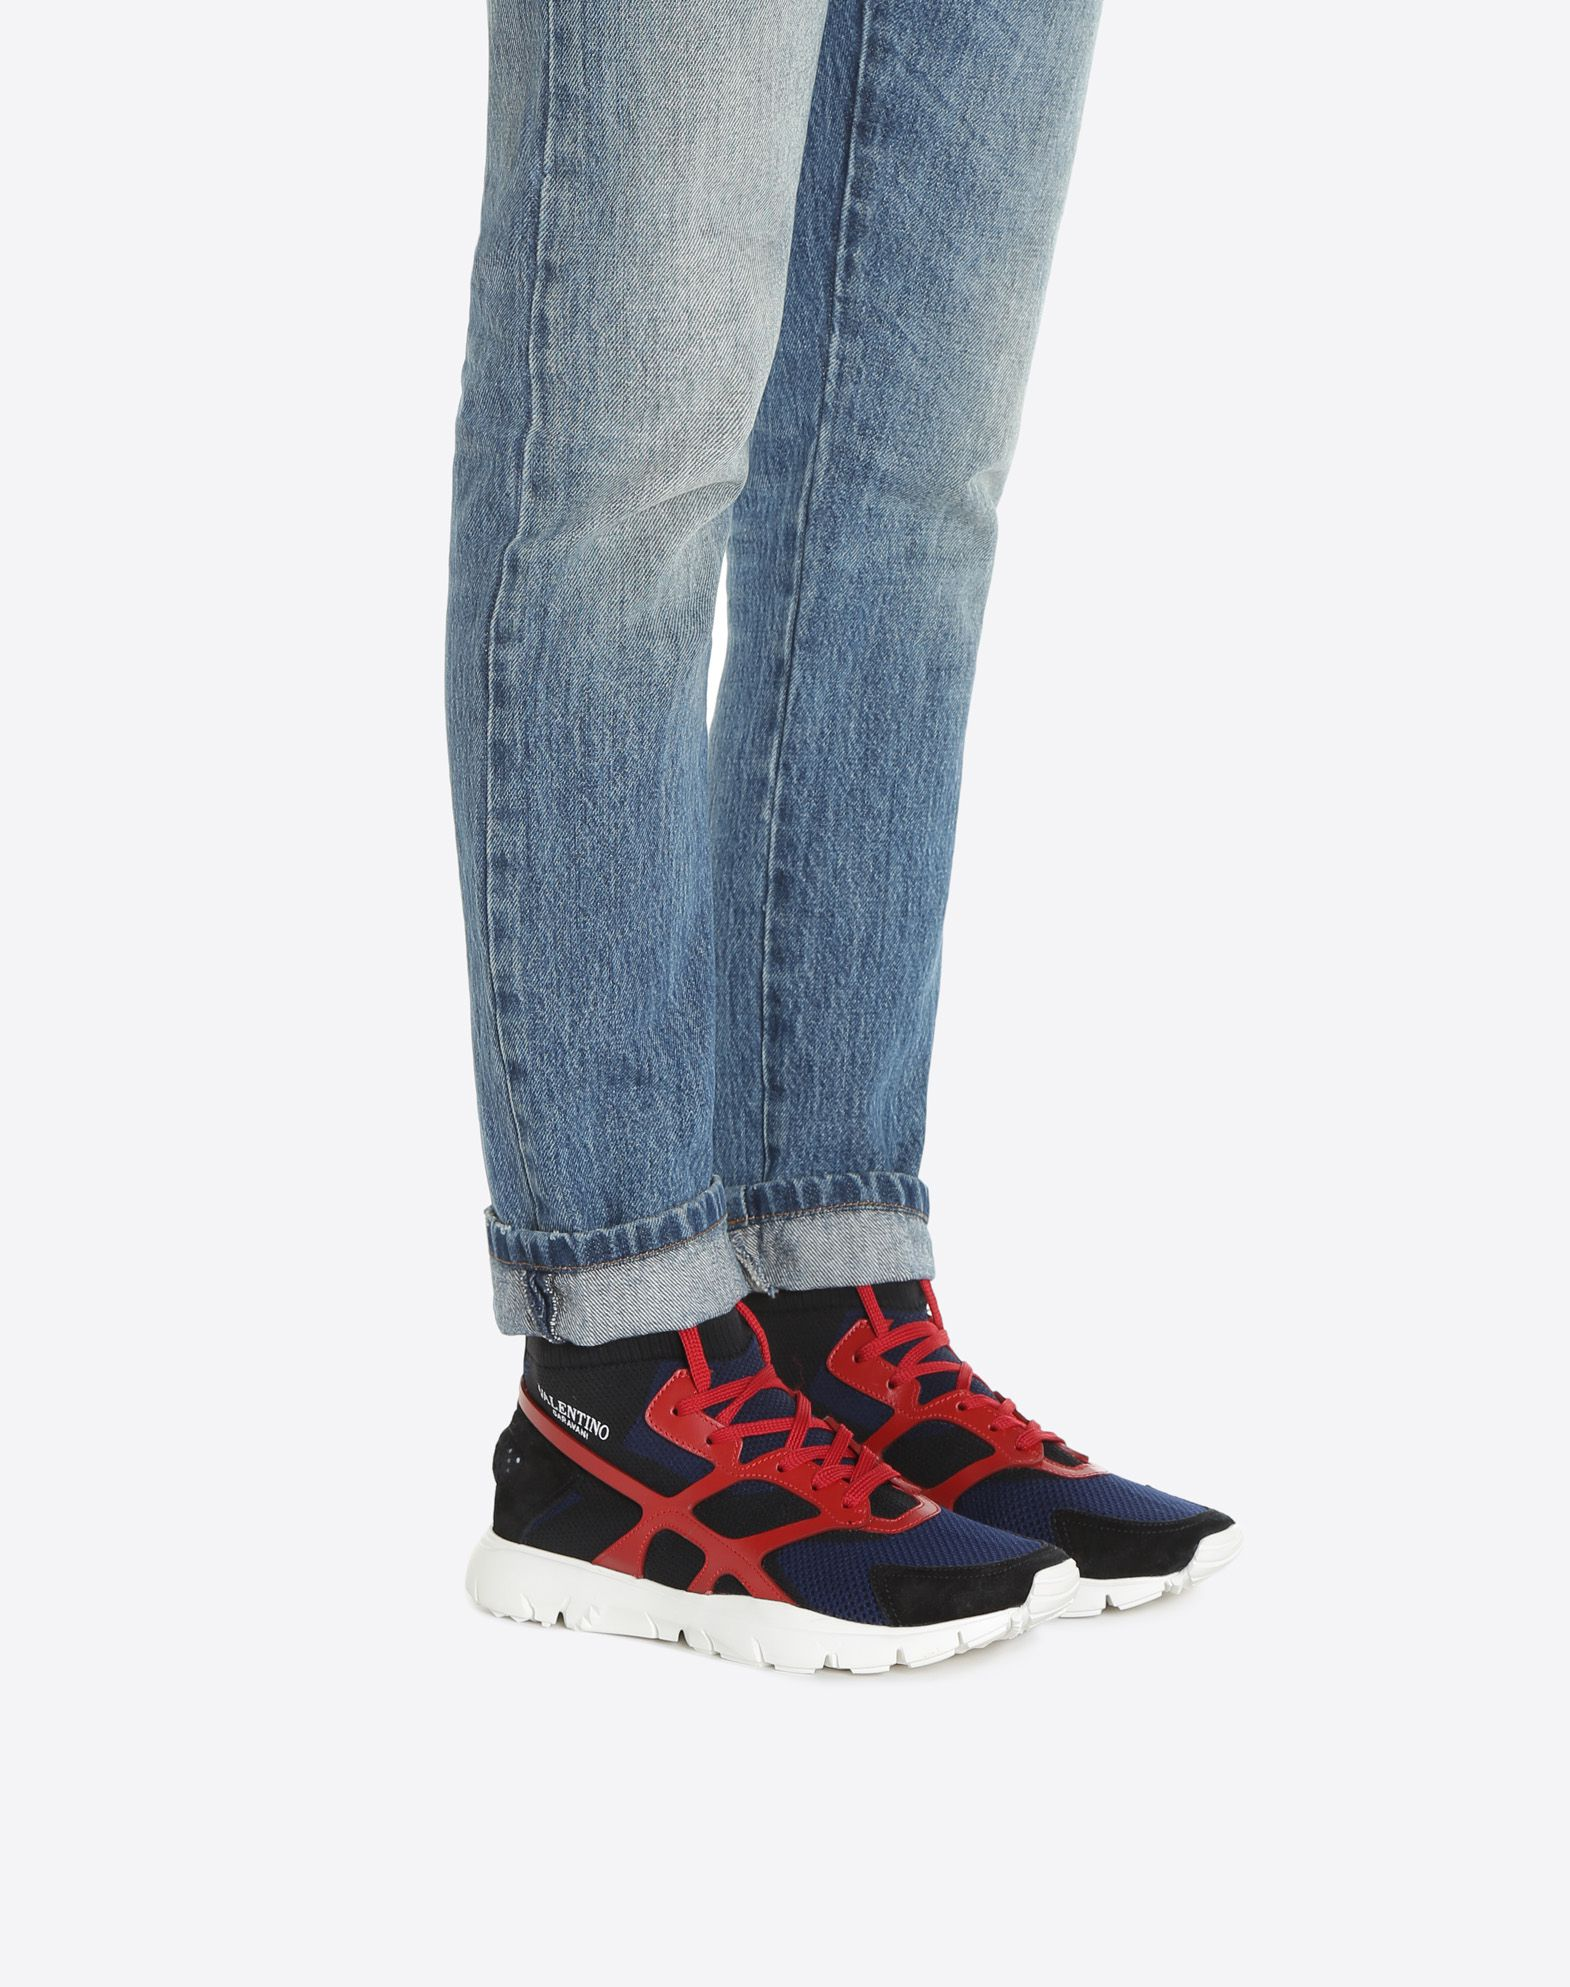 discount release dates Valentino Sound High sneakers cheap outlet IzJZUQ